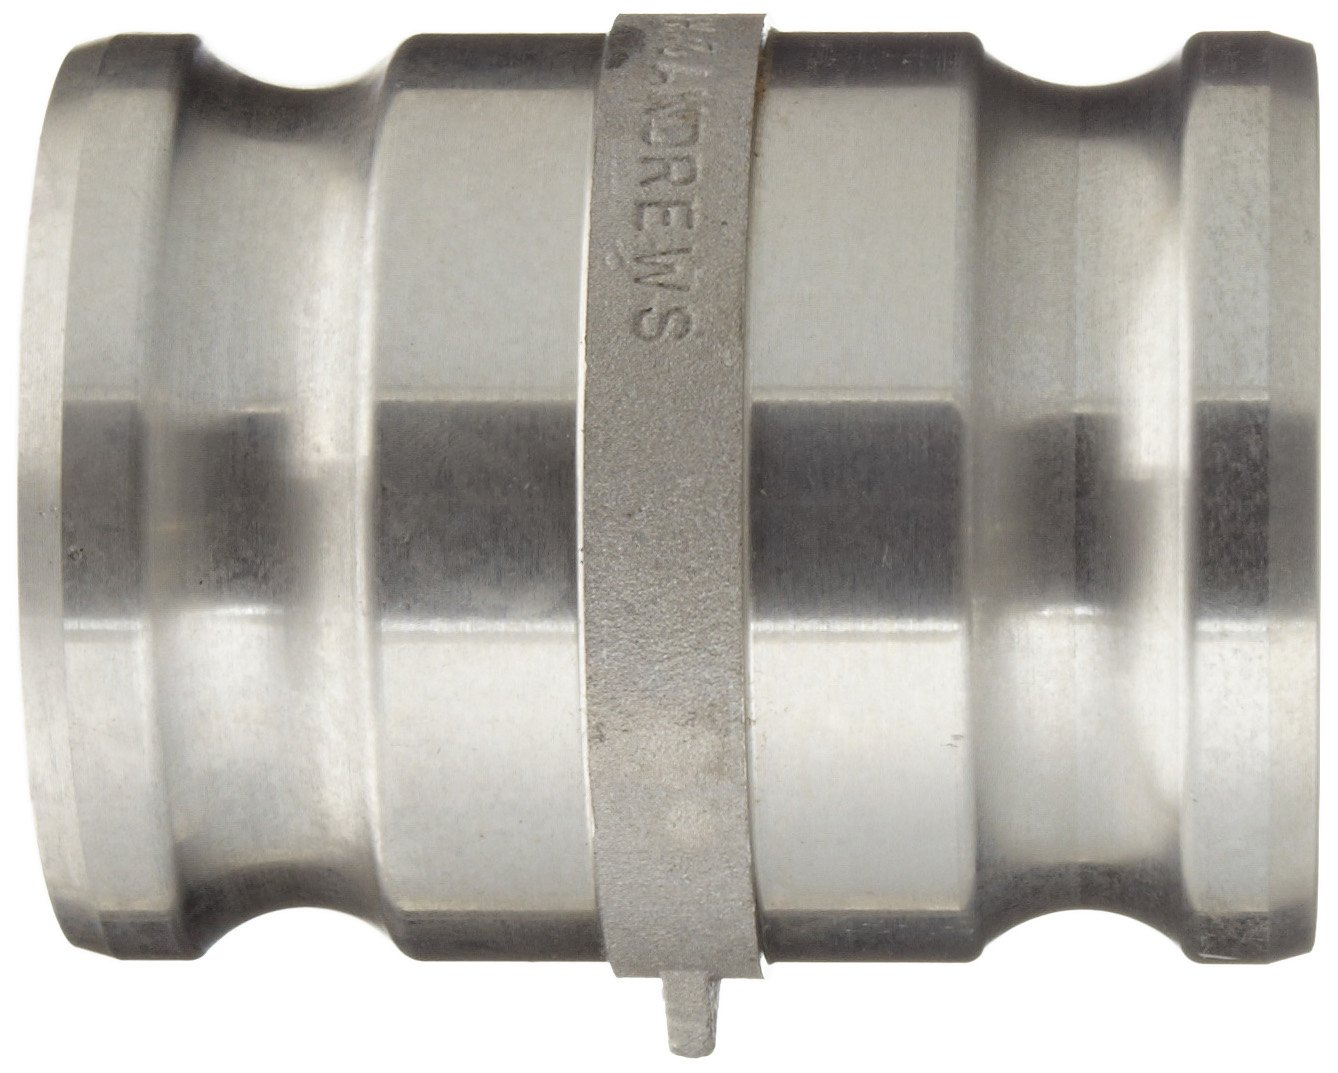 Dixon 300-AA-AL Aluminum Cam and Groove Hose Fitting, Spool Adapter, 3'' Plug by Dixon Valve & Coupling (Image #3)